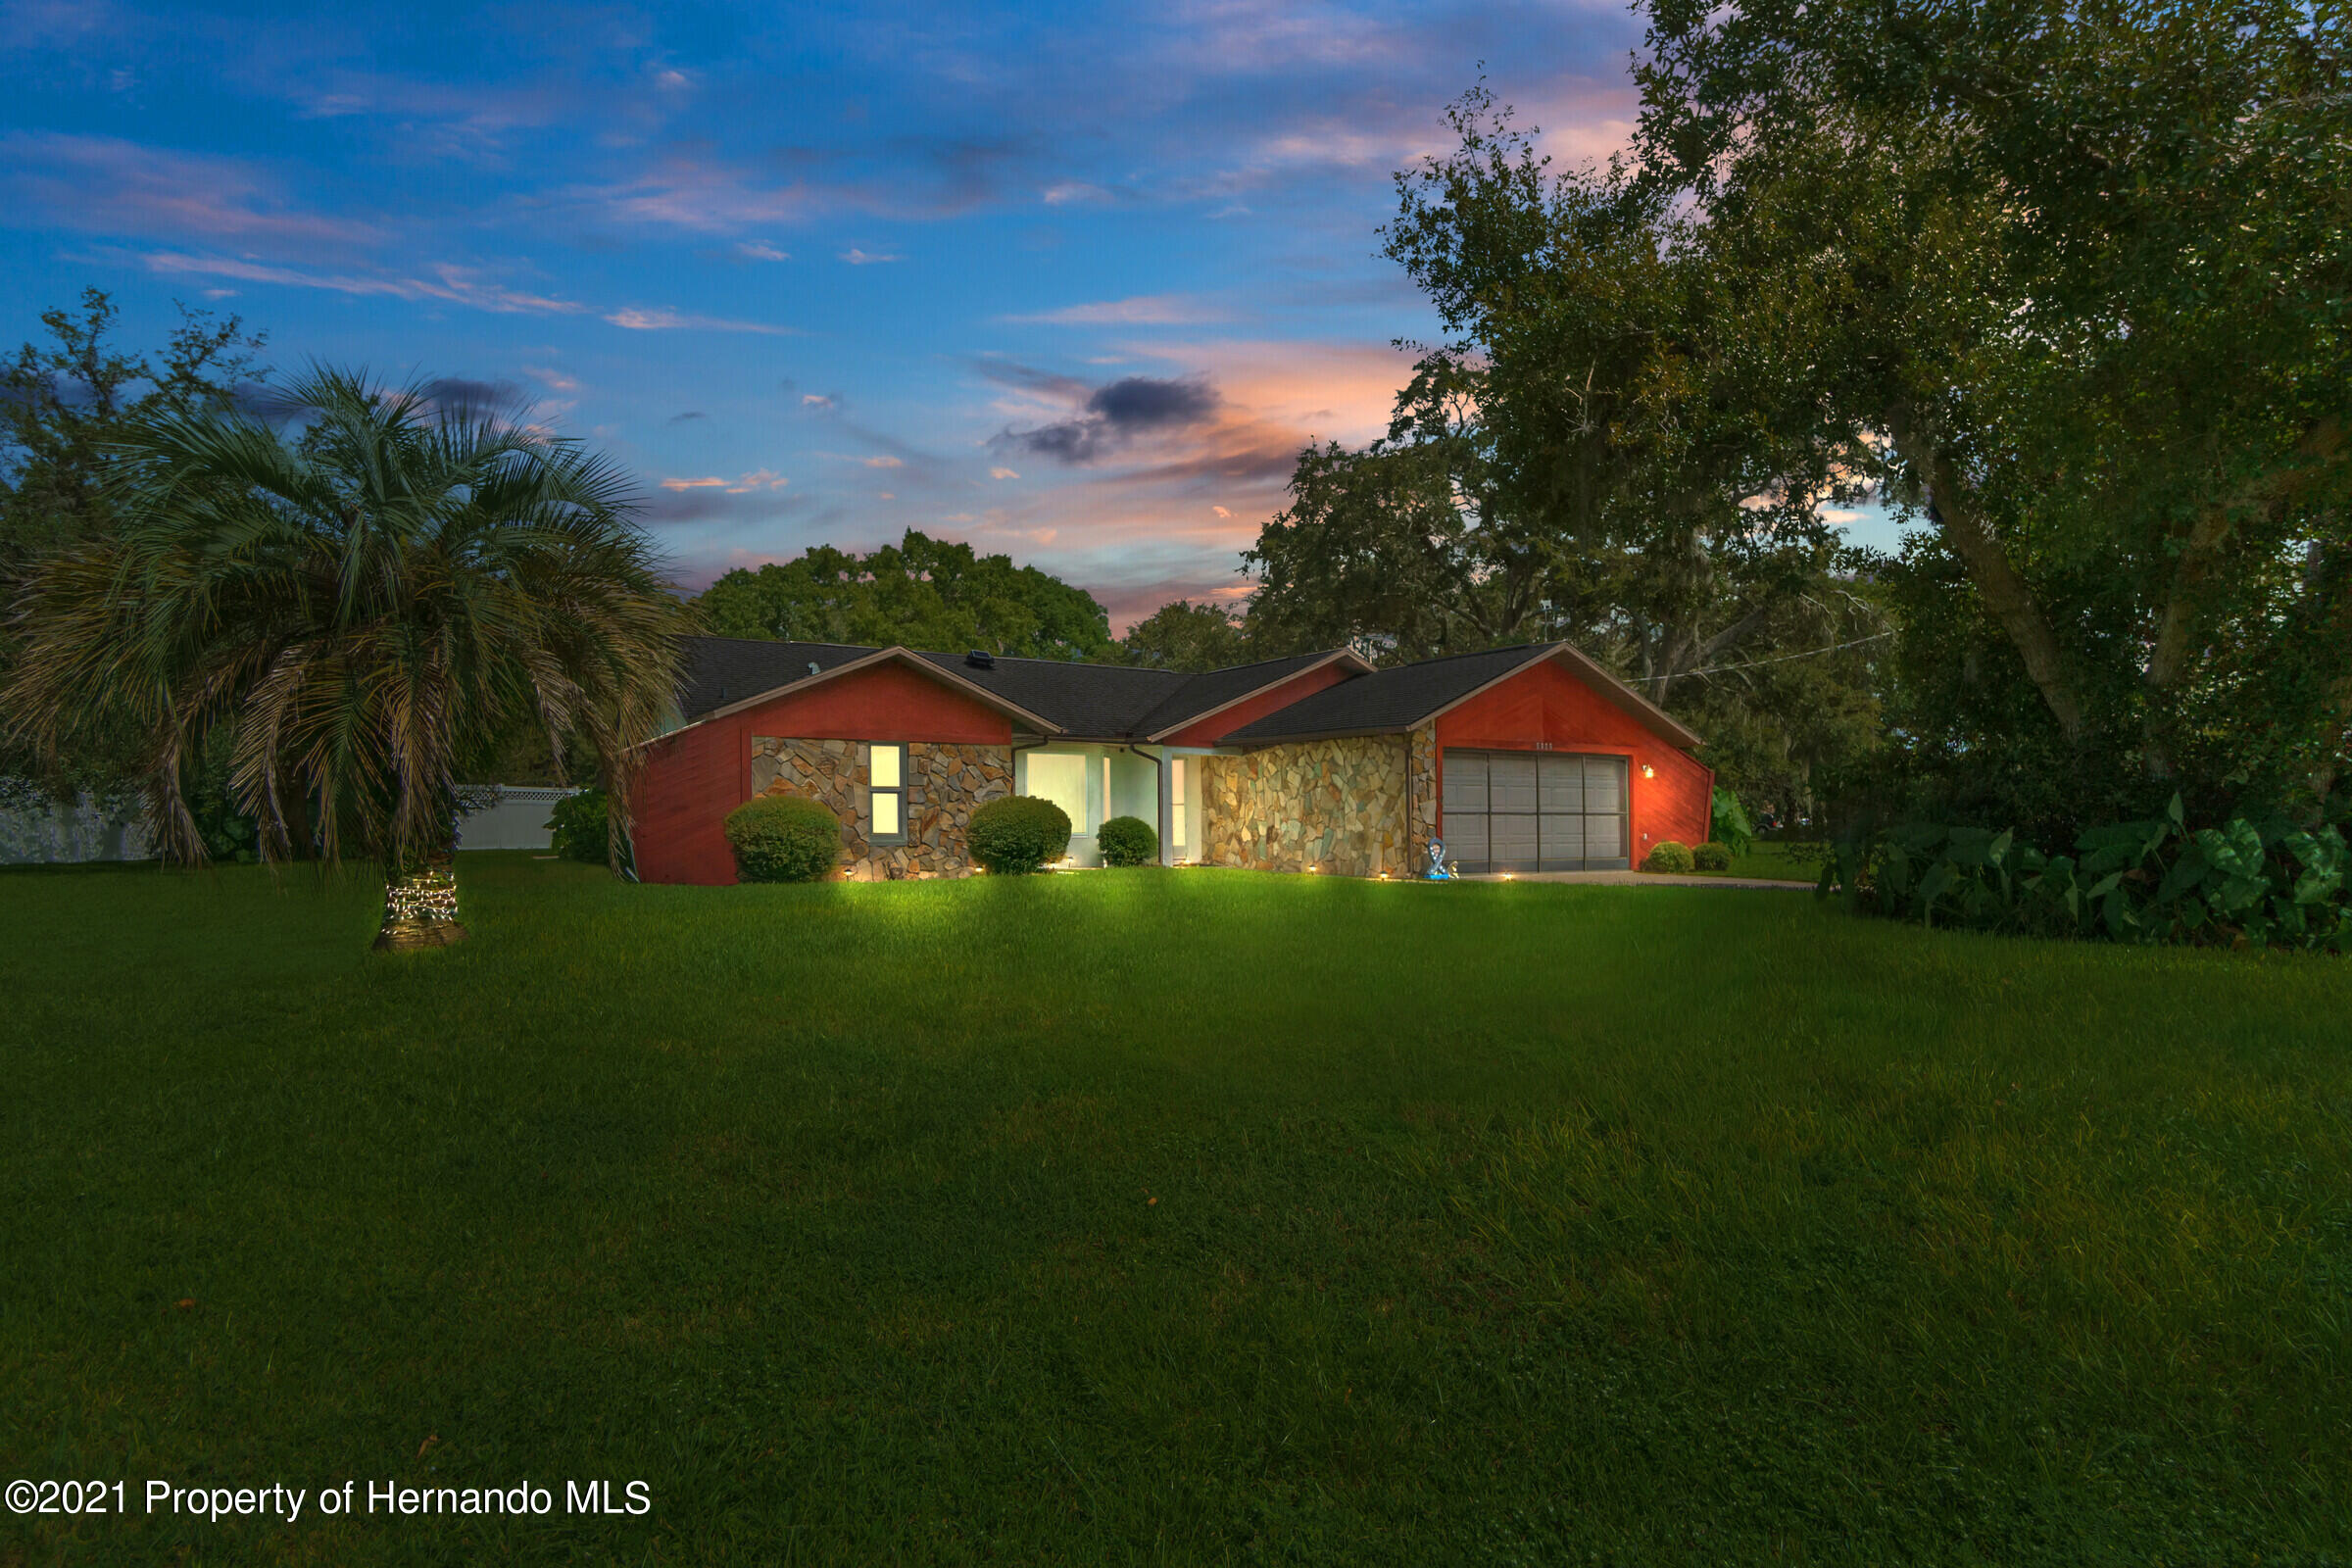 Image 9 of 21 For 5325 Abagail Drive